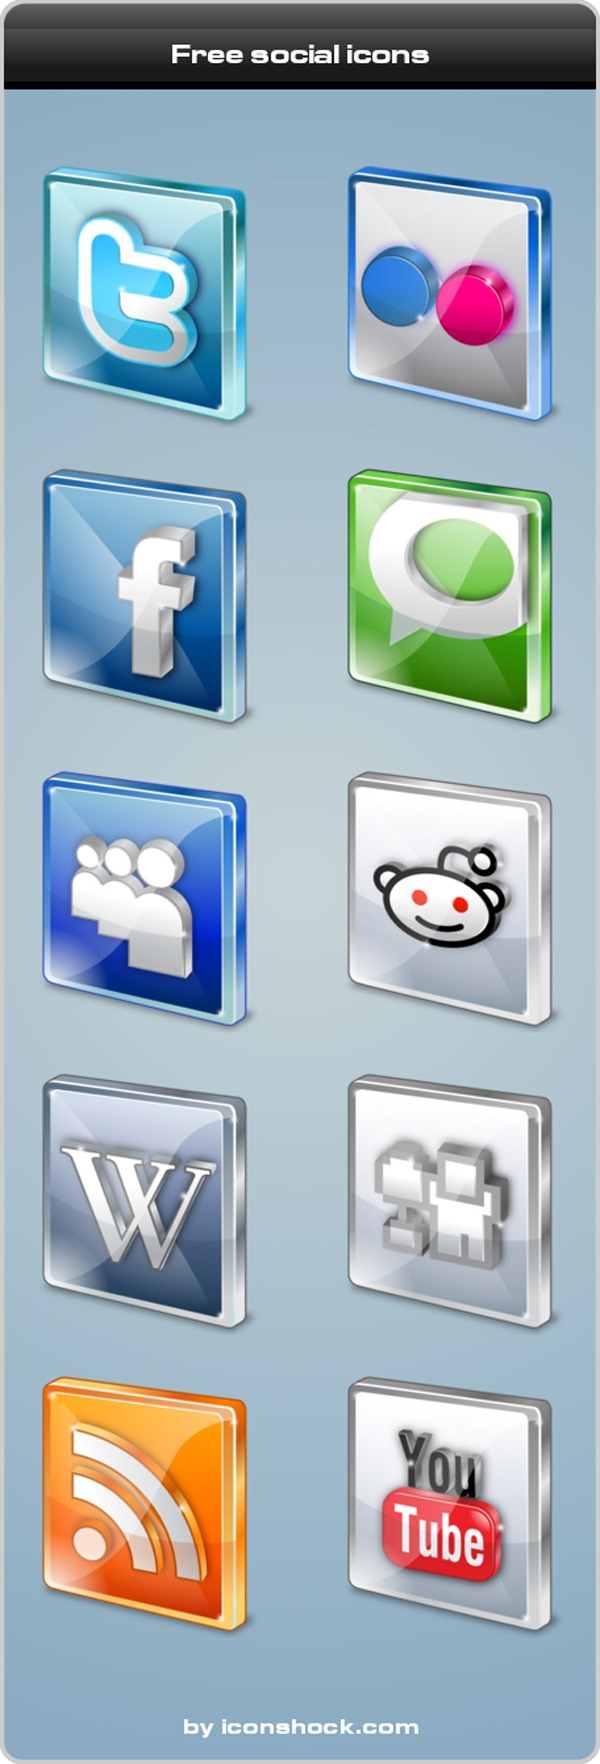 crystal-social-icons